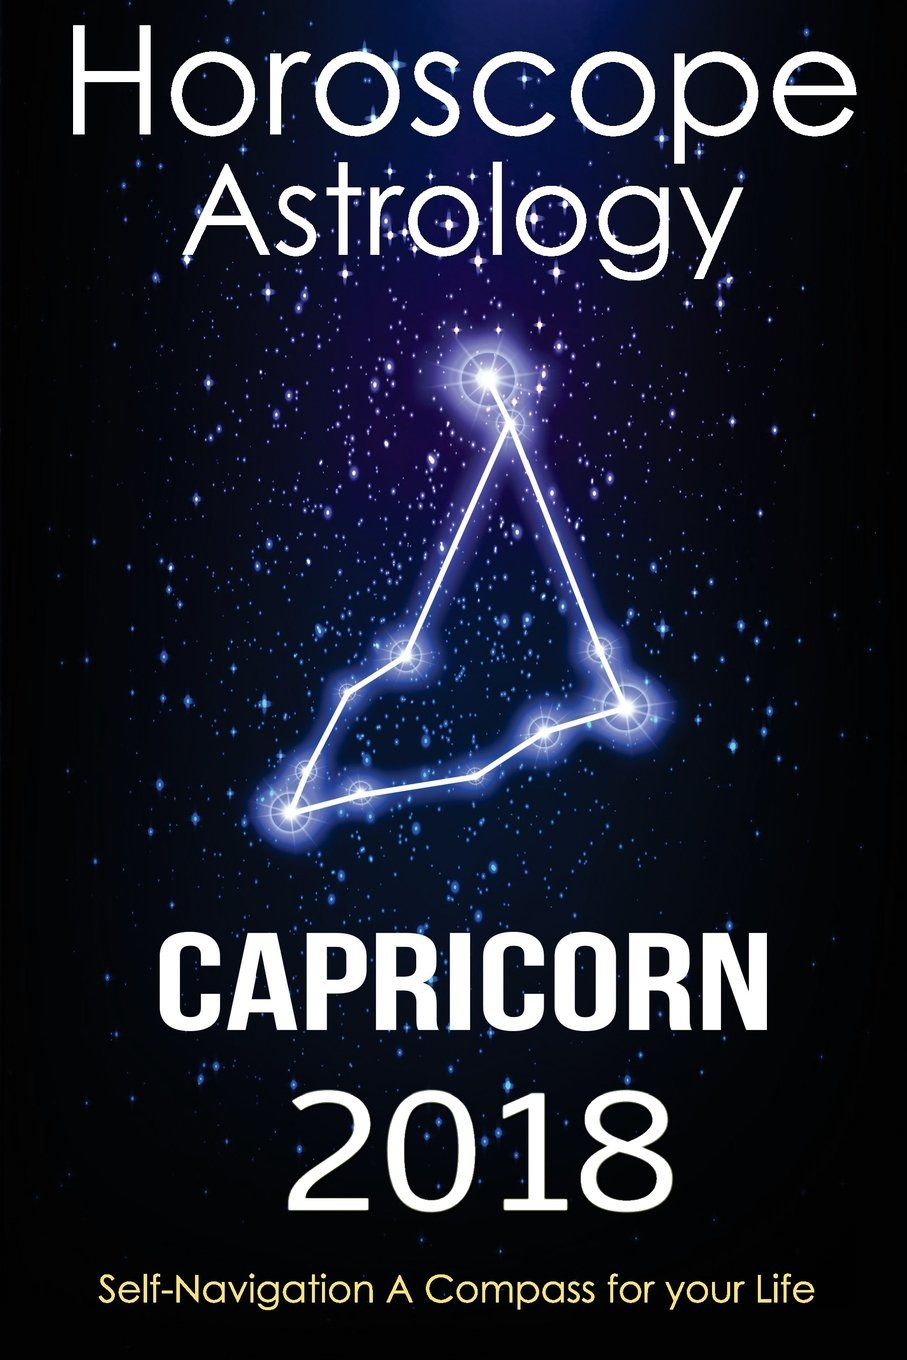 Horoscope & Astrology 2018 : Capricorn: The Complete Guide from Universe (The Secret form Fate in Zodiac)